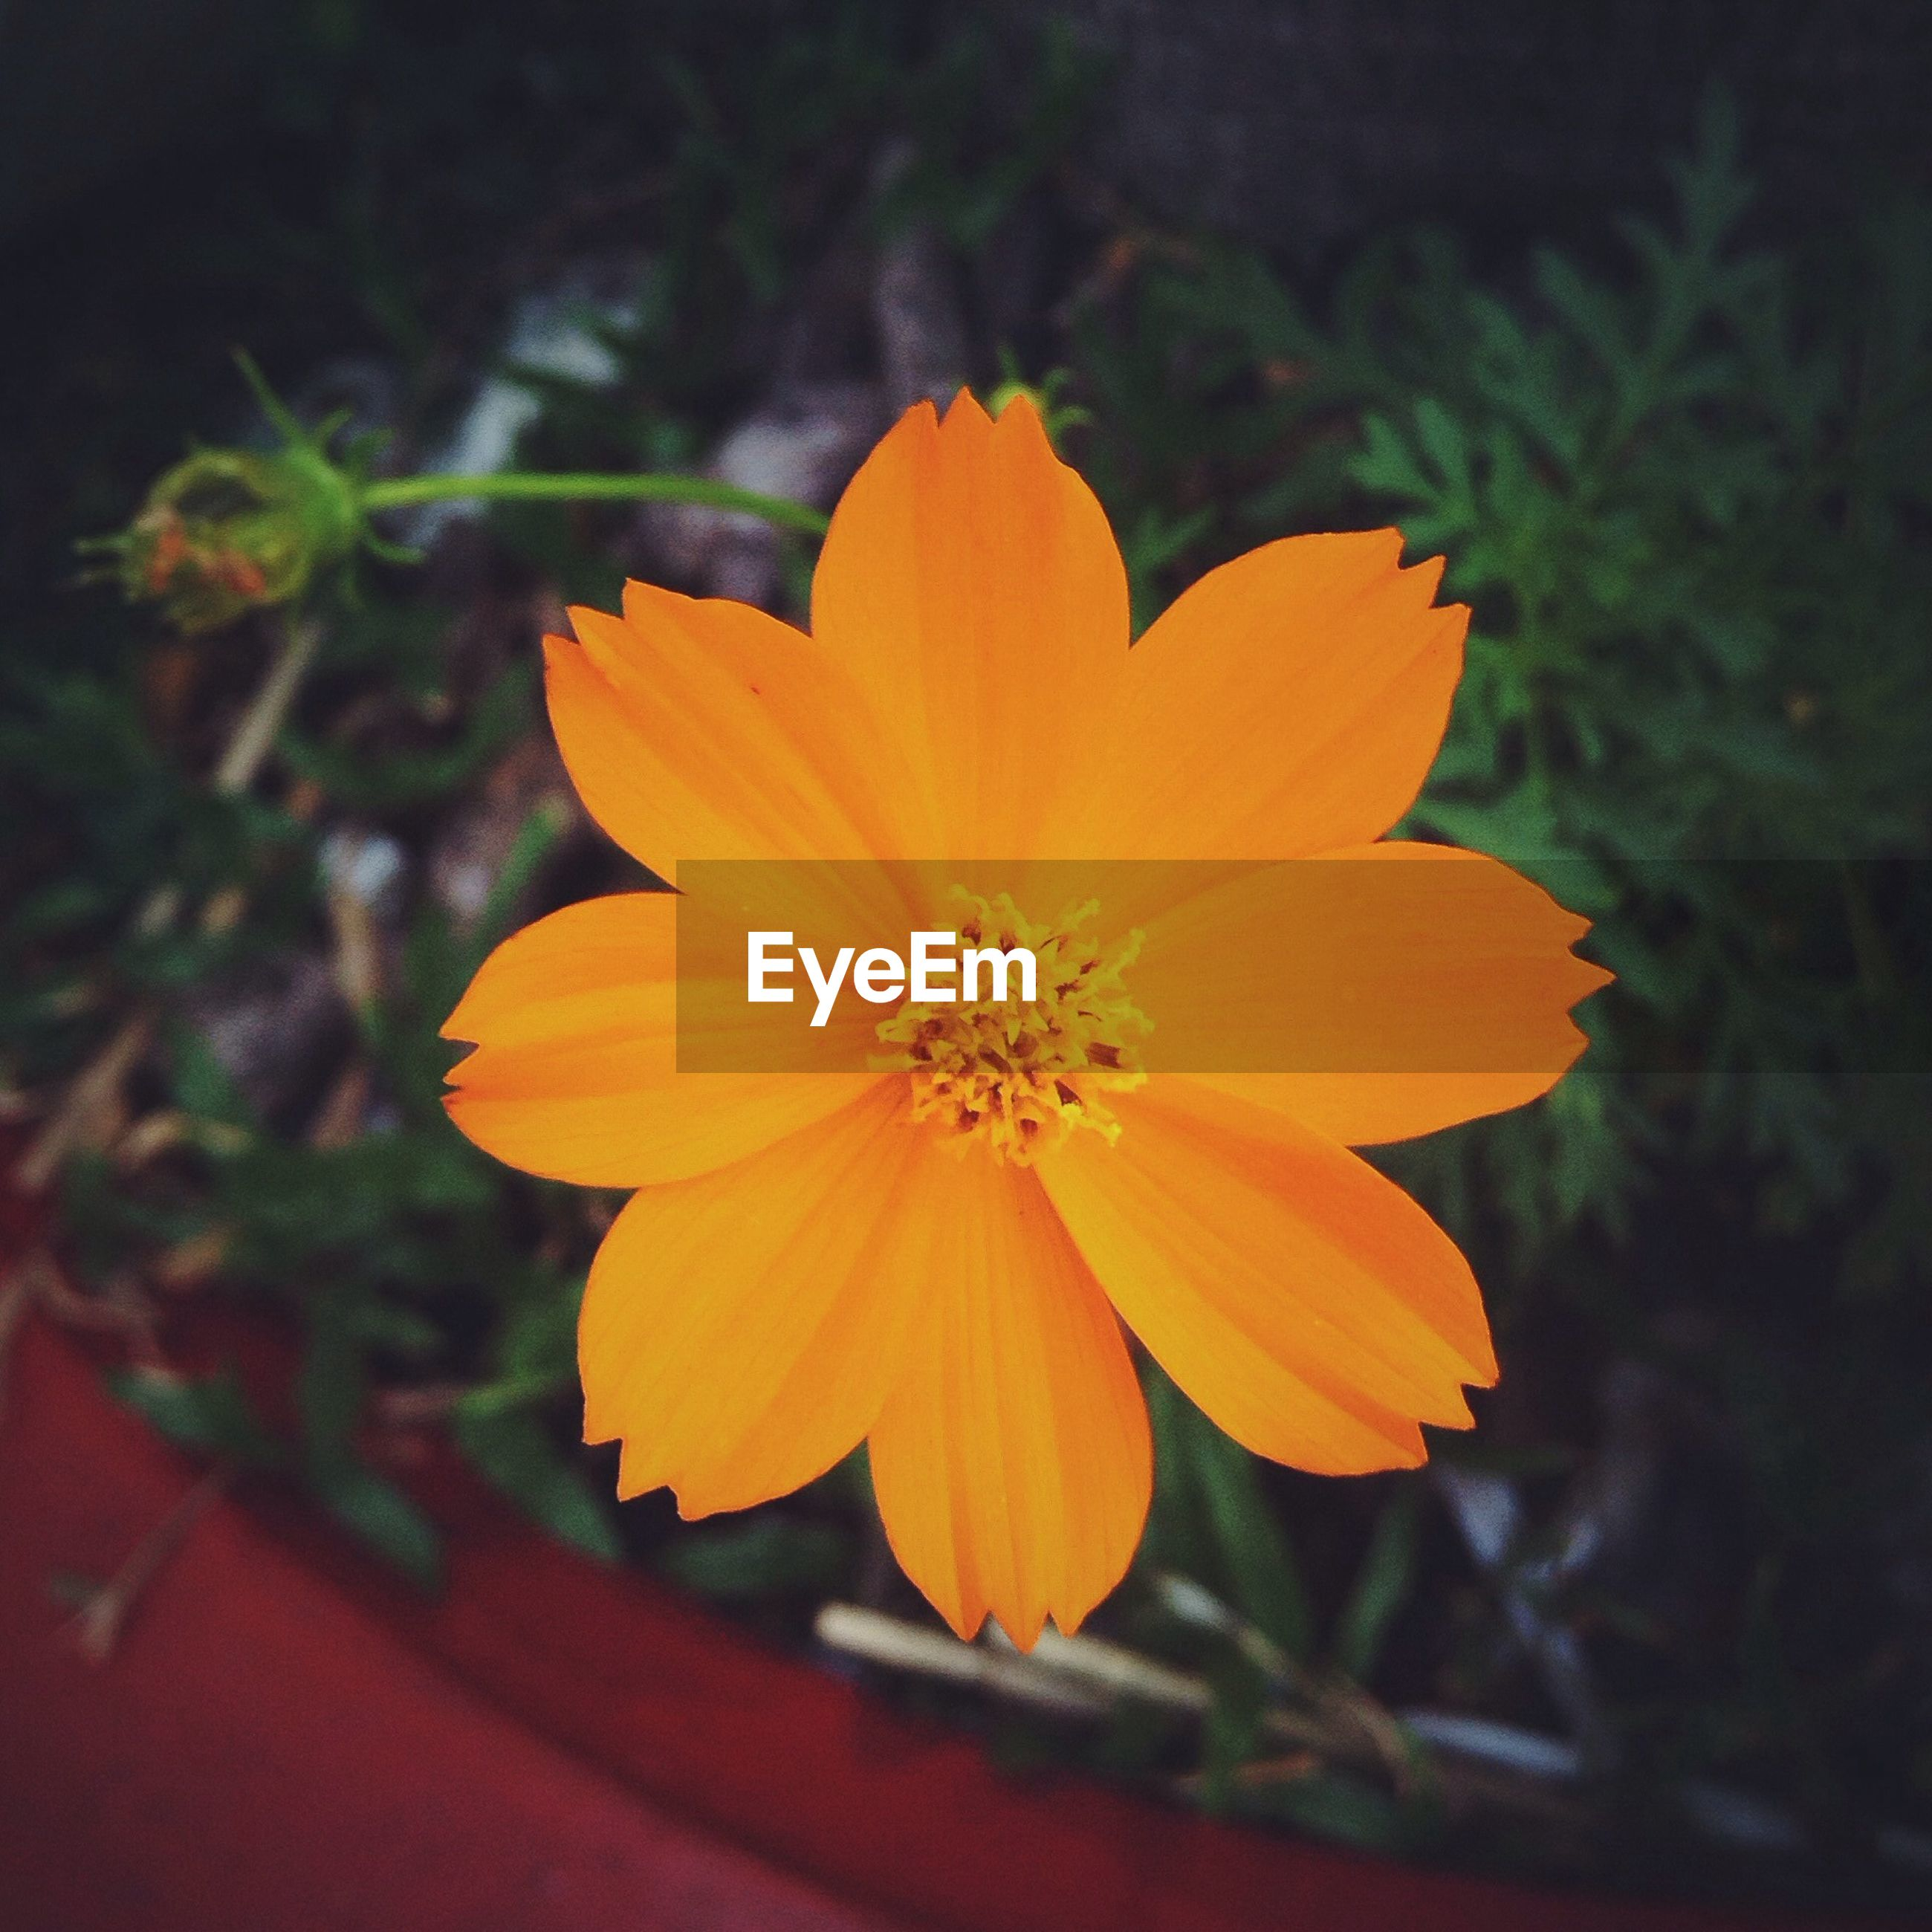 flower, petal, flower head, fragility, freshness, close-up, beauty in nature, growth, orange color, single flower, focus on foreground, blooming, nature, pollen, plant, stamen, yellow, in bloom, high angle view, no people